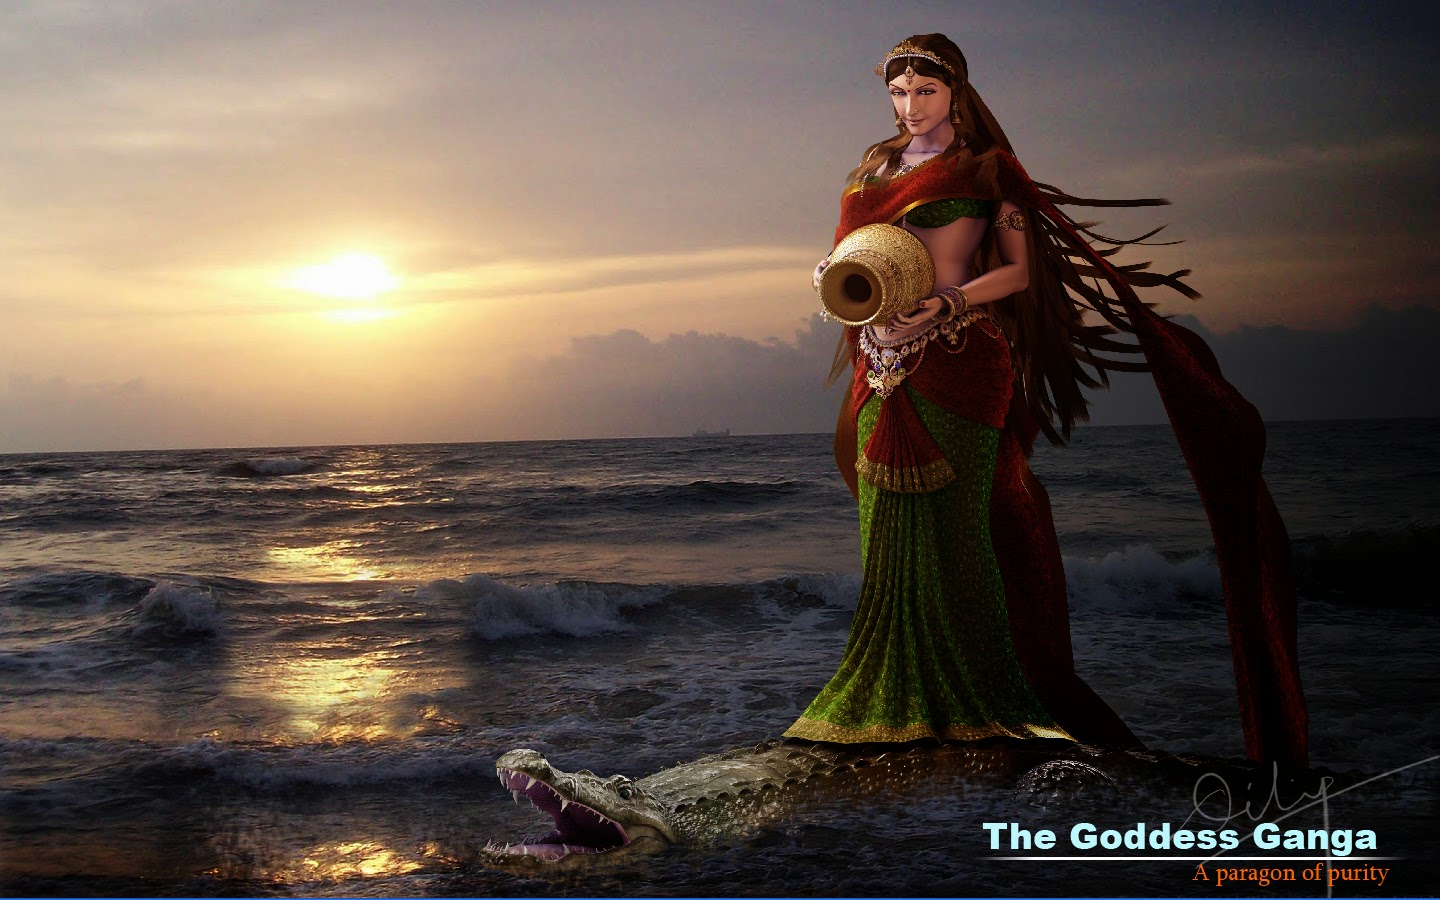 Goddess Ganga,Goddess Kaveri,Indian Goddess Kaveri,Free Download,Tamil God Ganga,Tamilnadu,Free Gallery,Wallpapers,Photos,Images,Stills,Videos,High Definition,High Resolution,Goddess